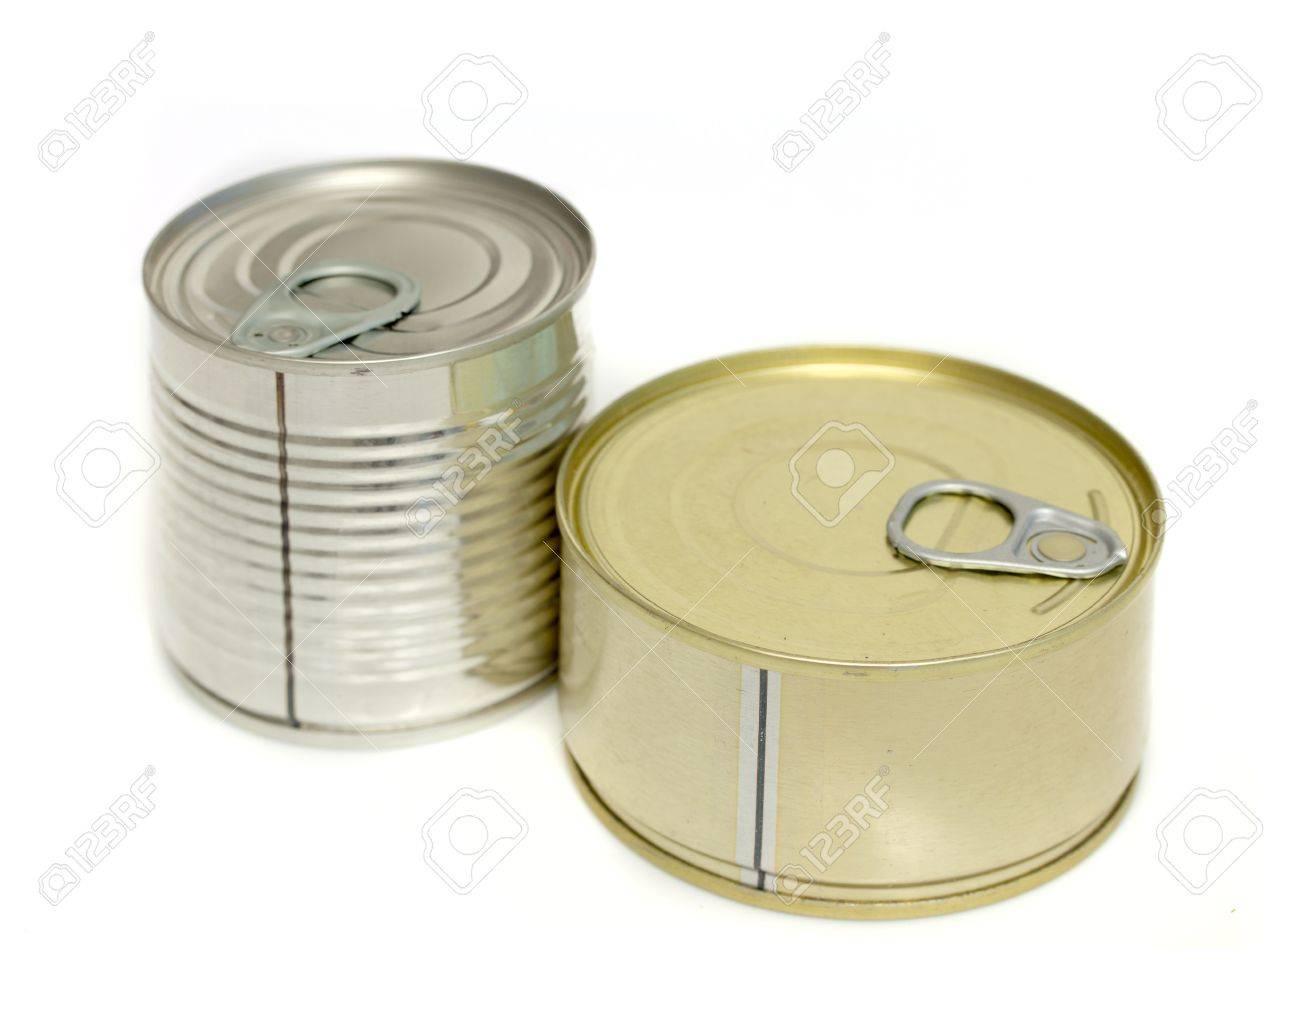 canned meat on a white background Stock Photo - 20813715